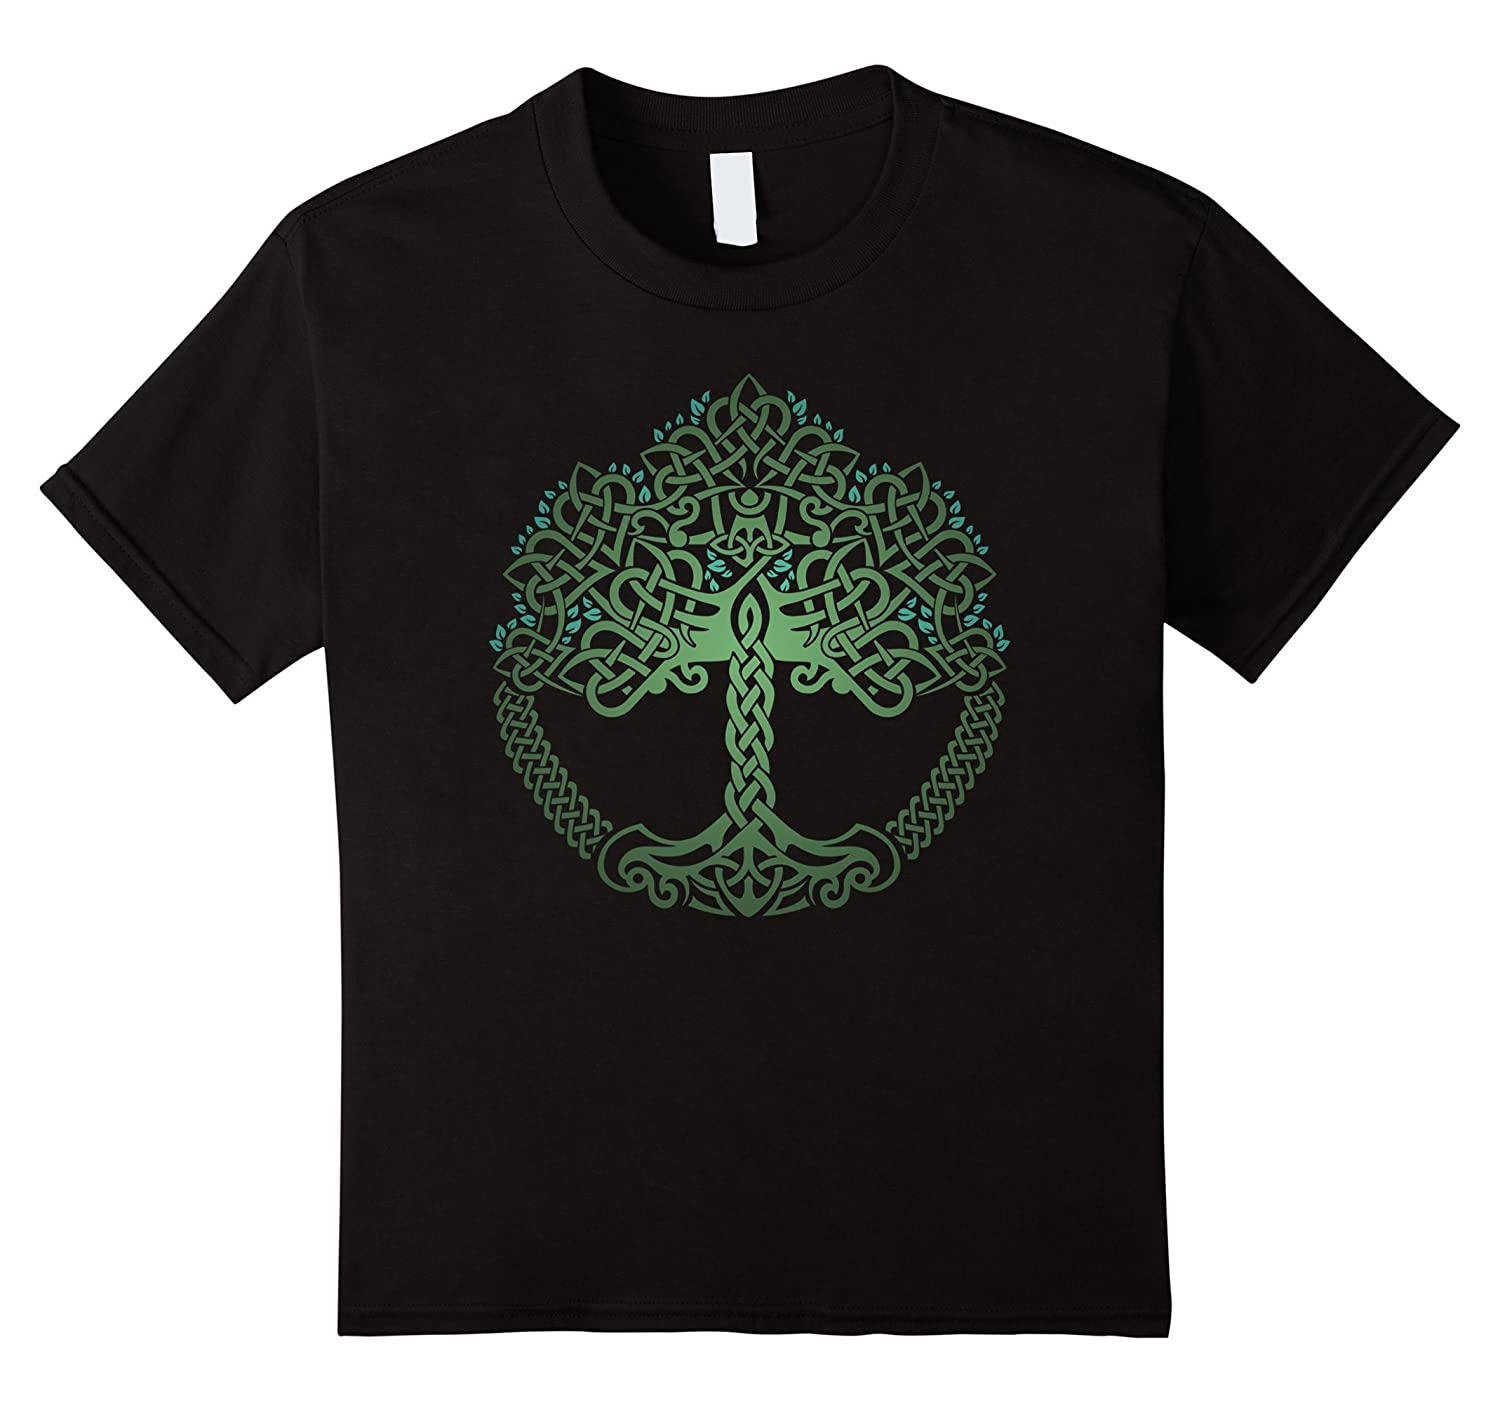 VIKING CELTIC KNOTWORK T SHIRT Black-Awarplus